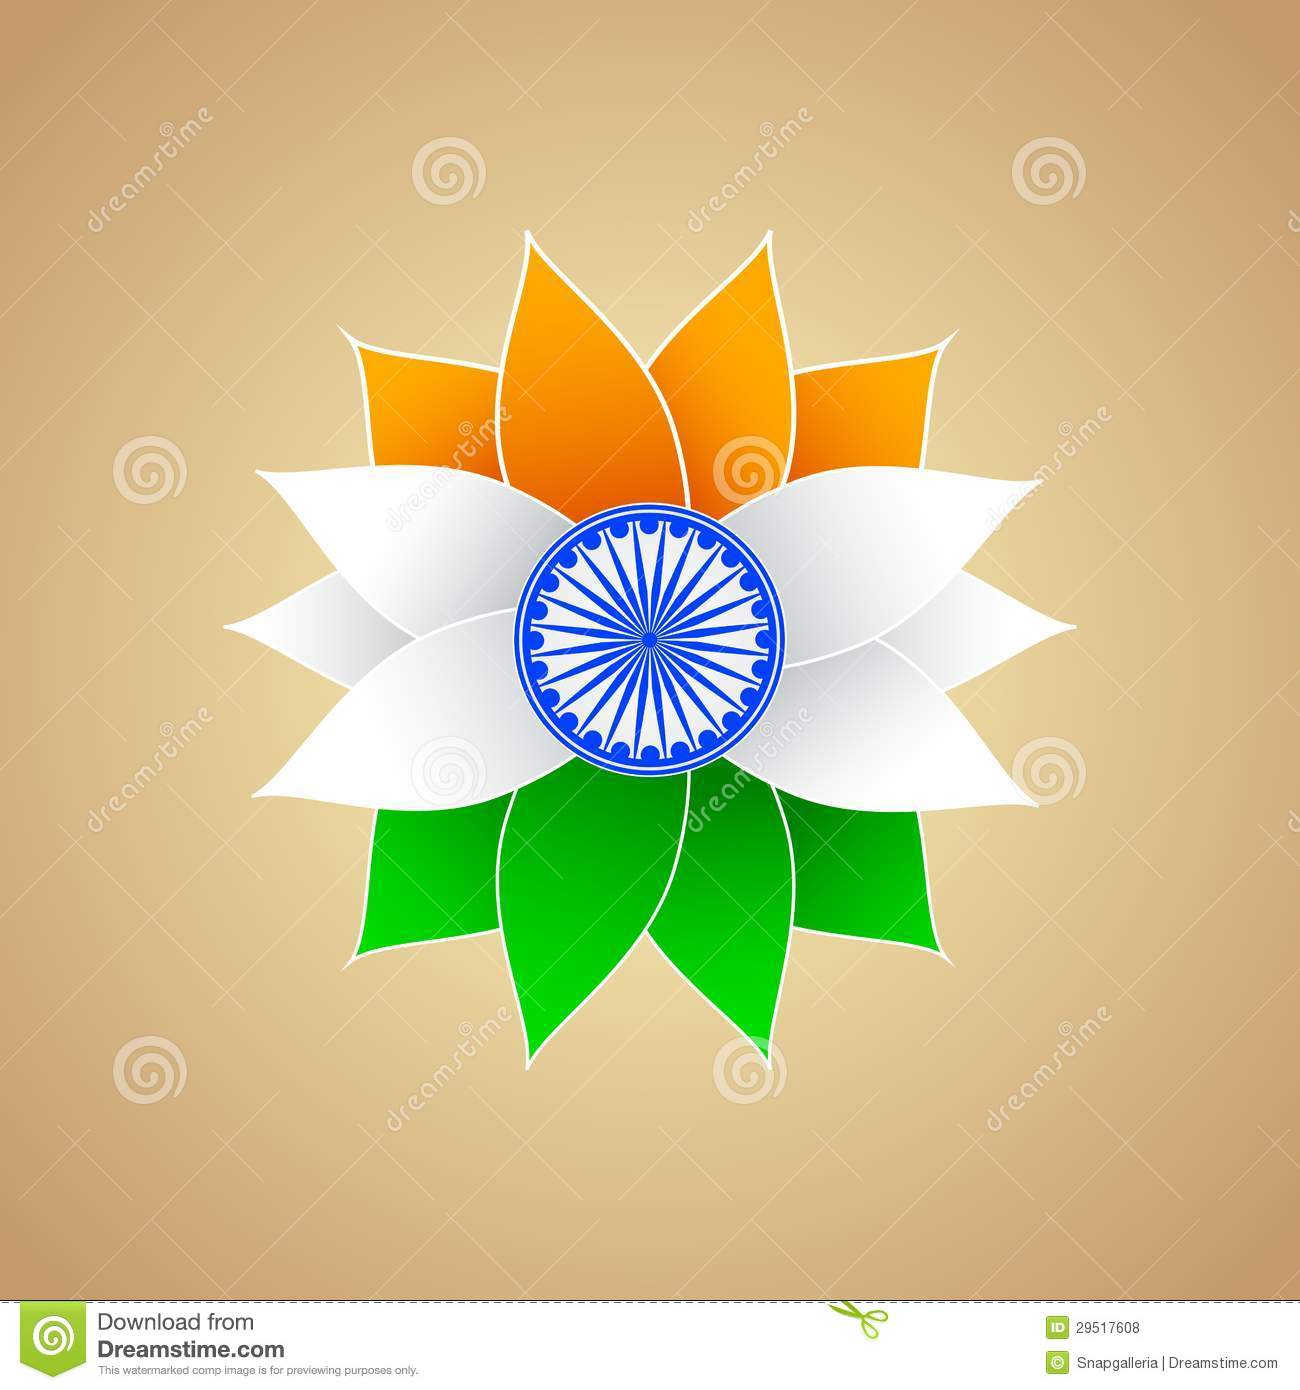 Indian Flag Color Flower Royalty Free Stock Photos Image: 29517608